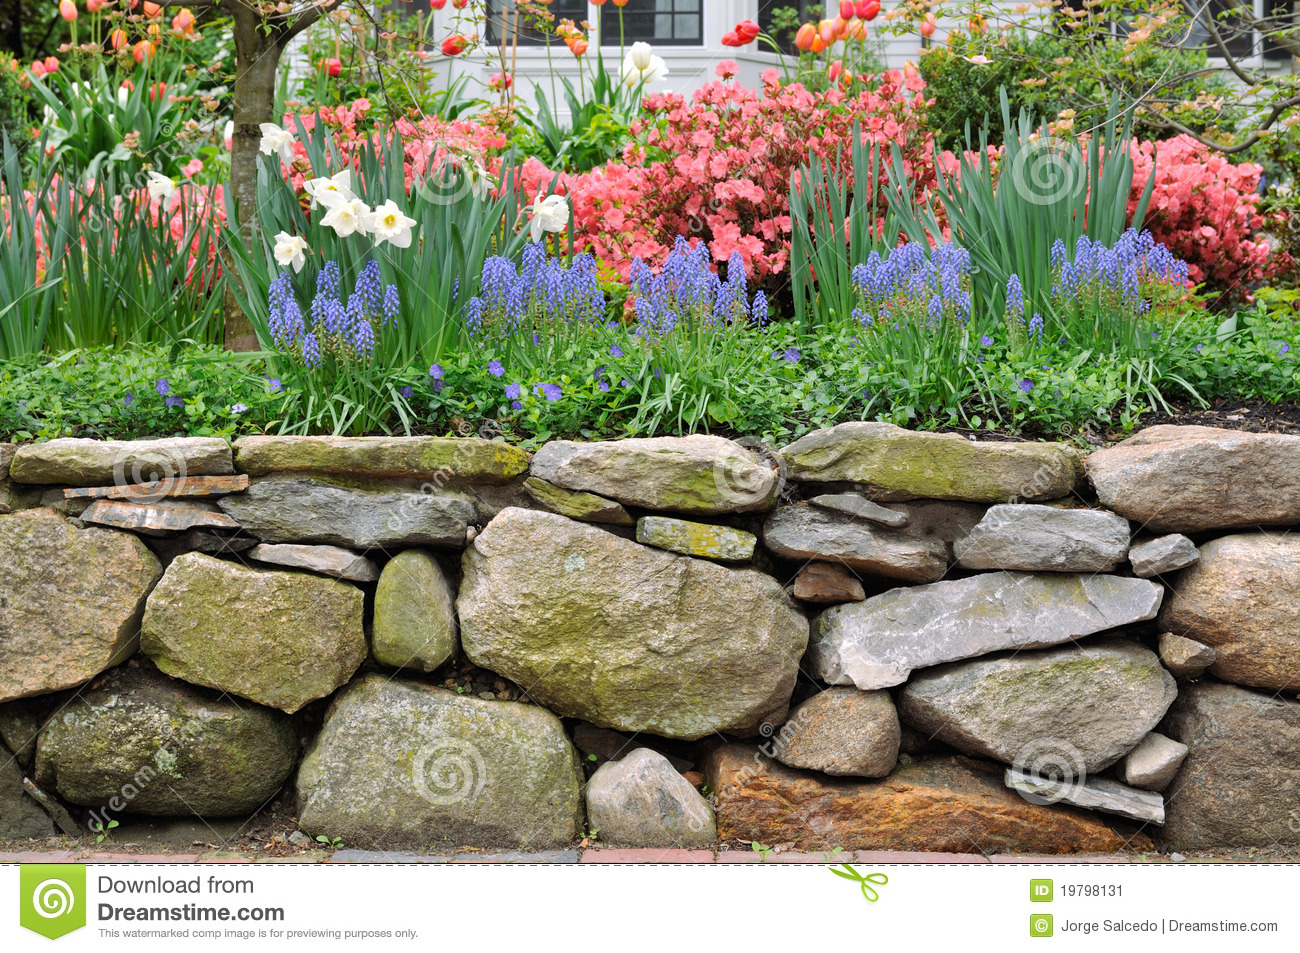 Dry stone wall and colorful garden stock image image of for Gardens with rocks and stones